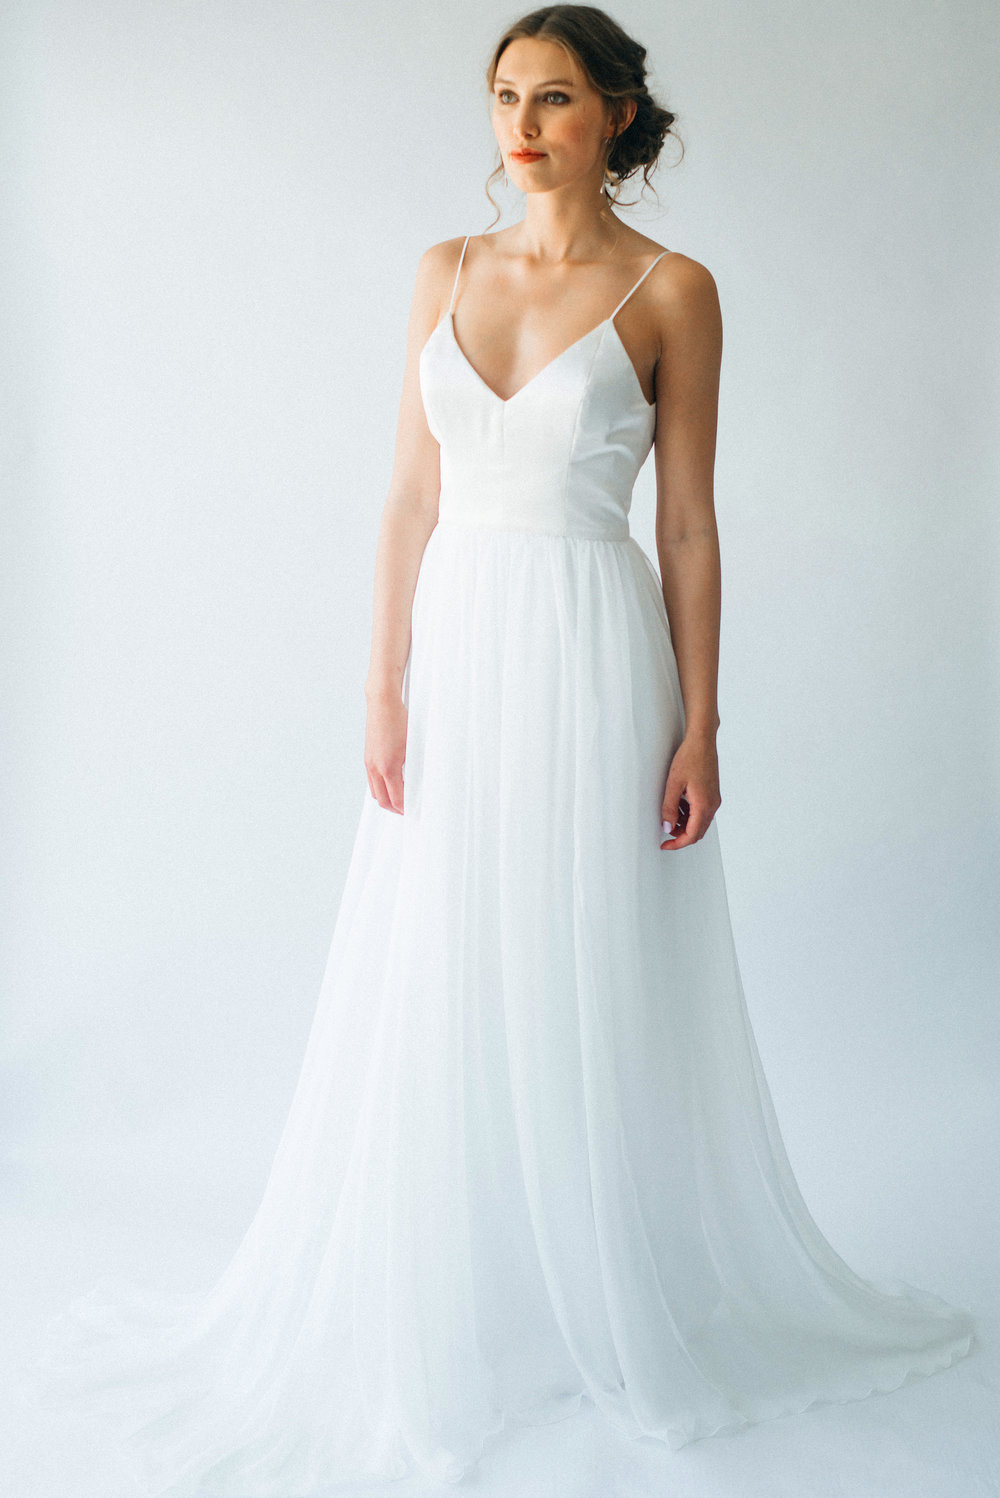 Handmade-wedding-dress-Cornwall.jpg